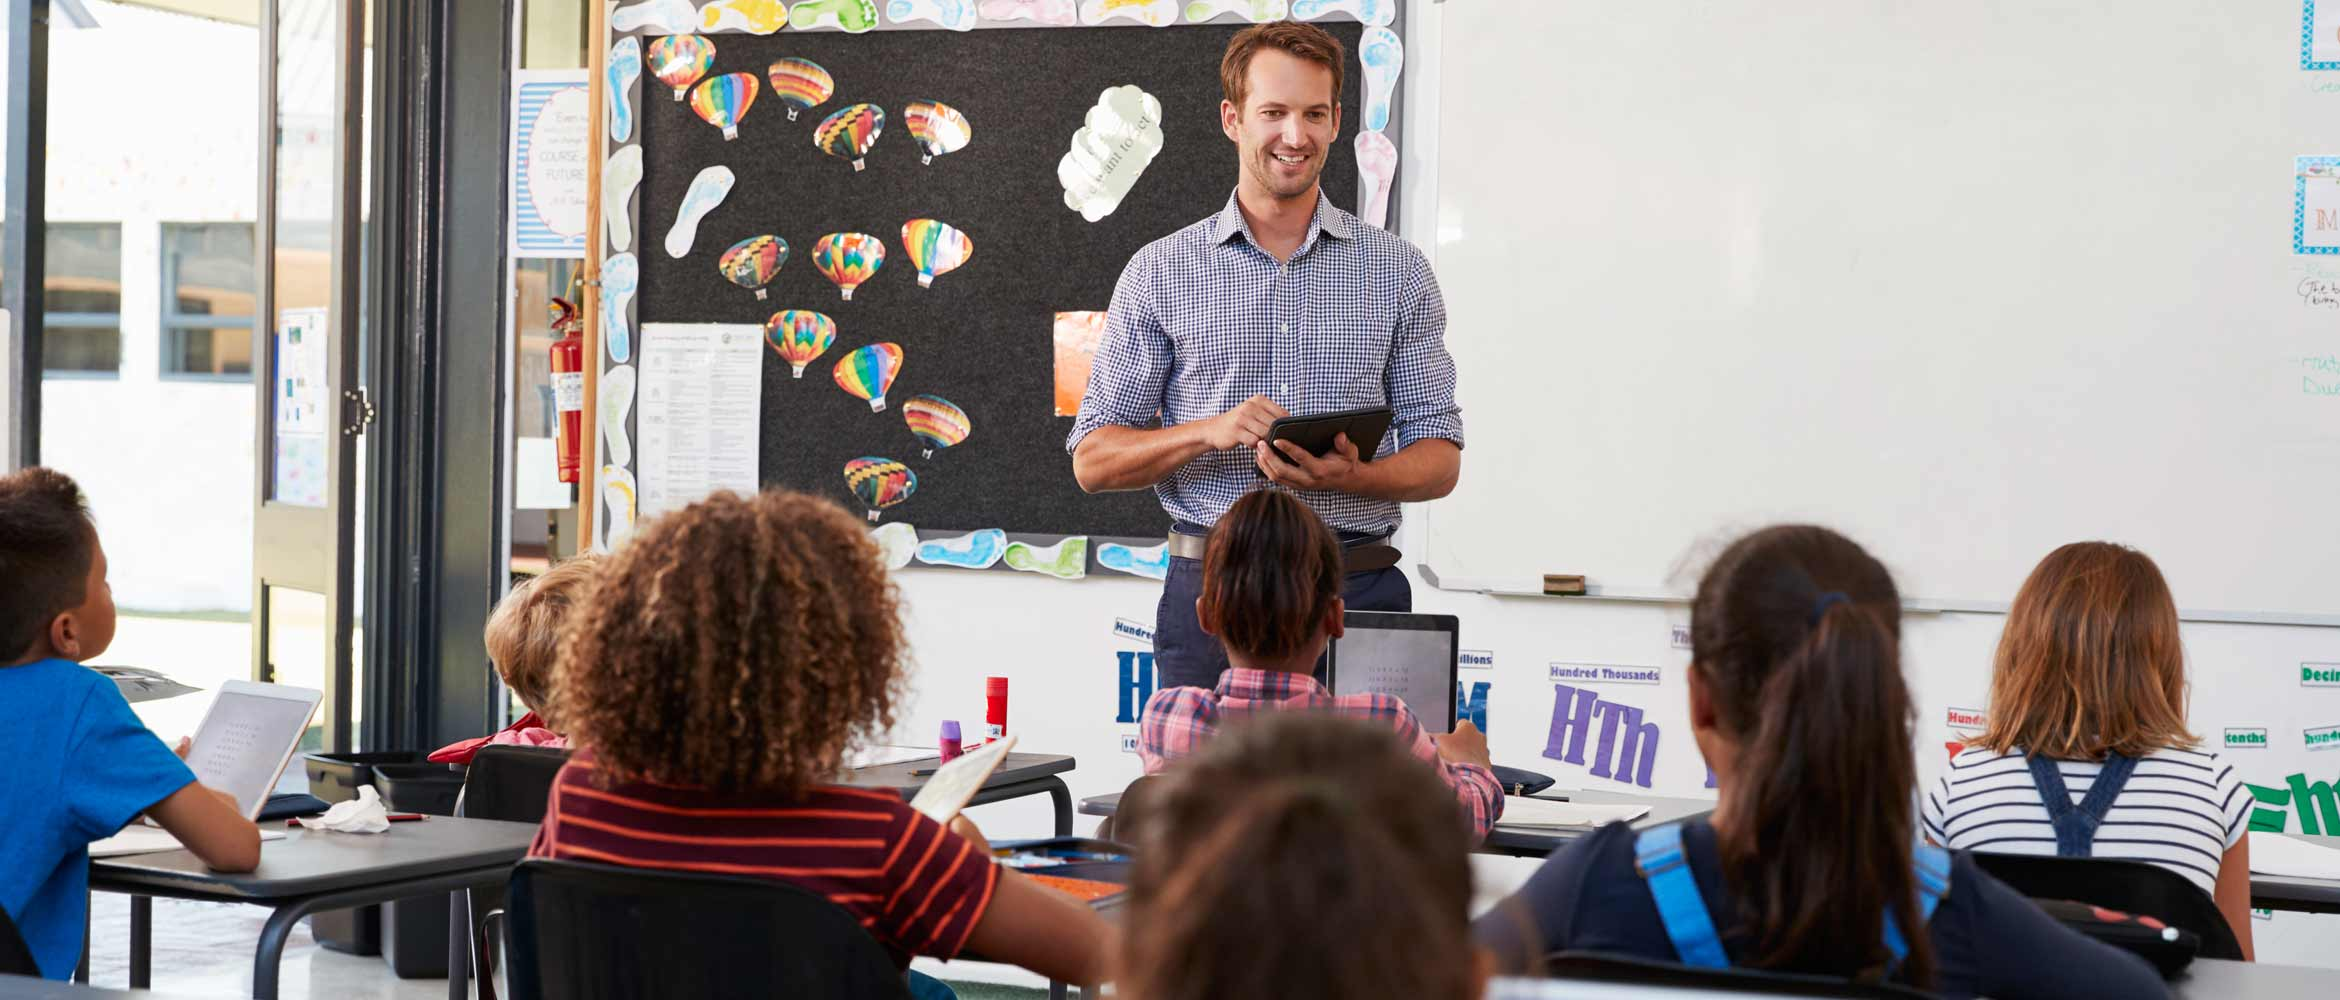 Technology in education helps IT managers reduce the admin burden on teachers